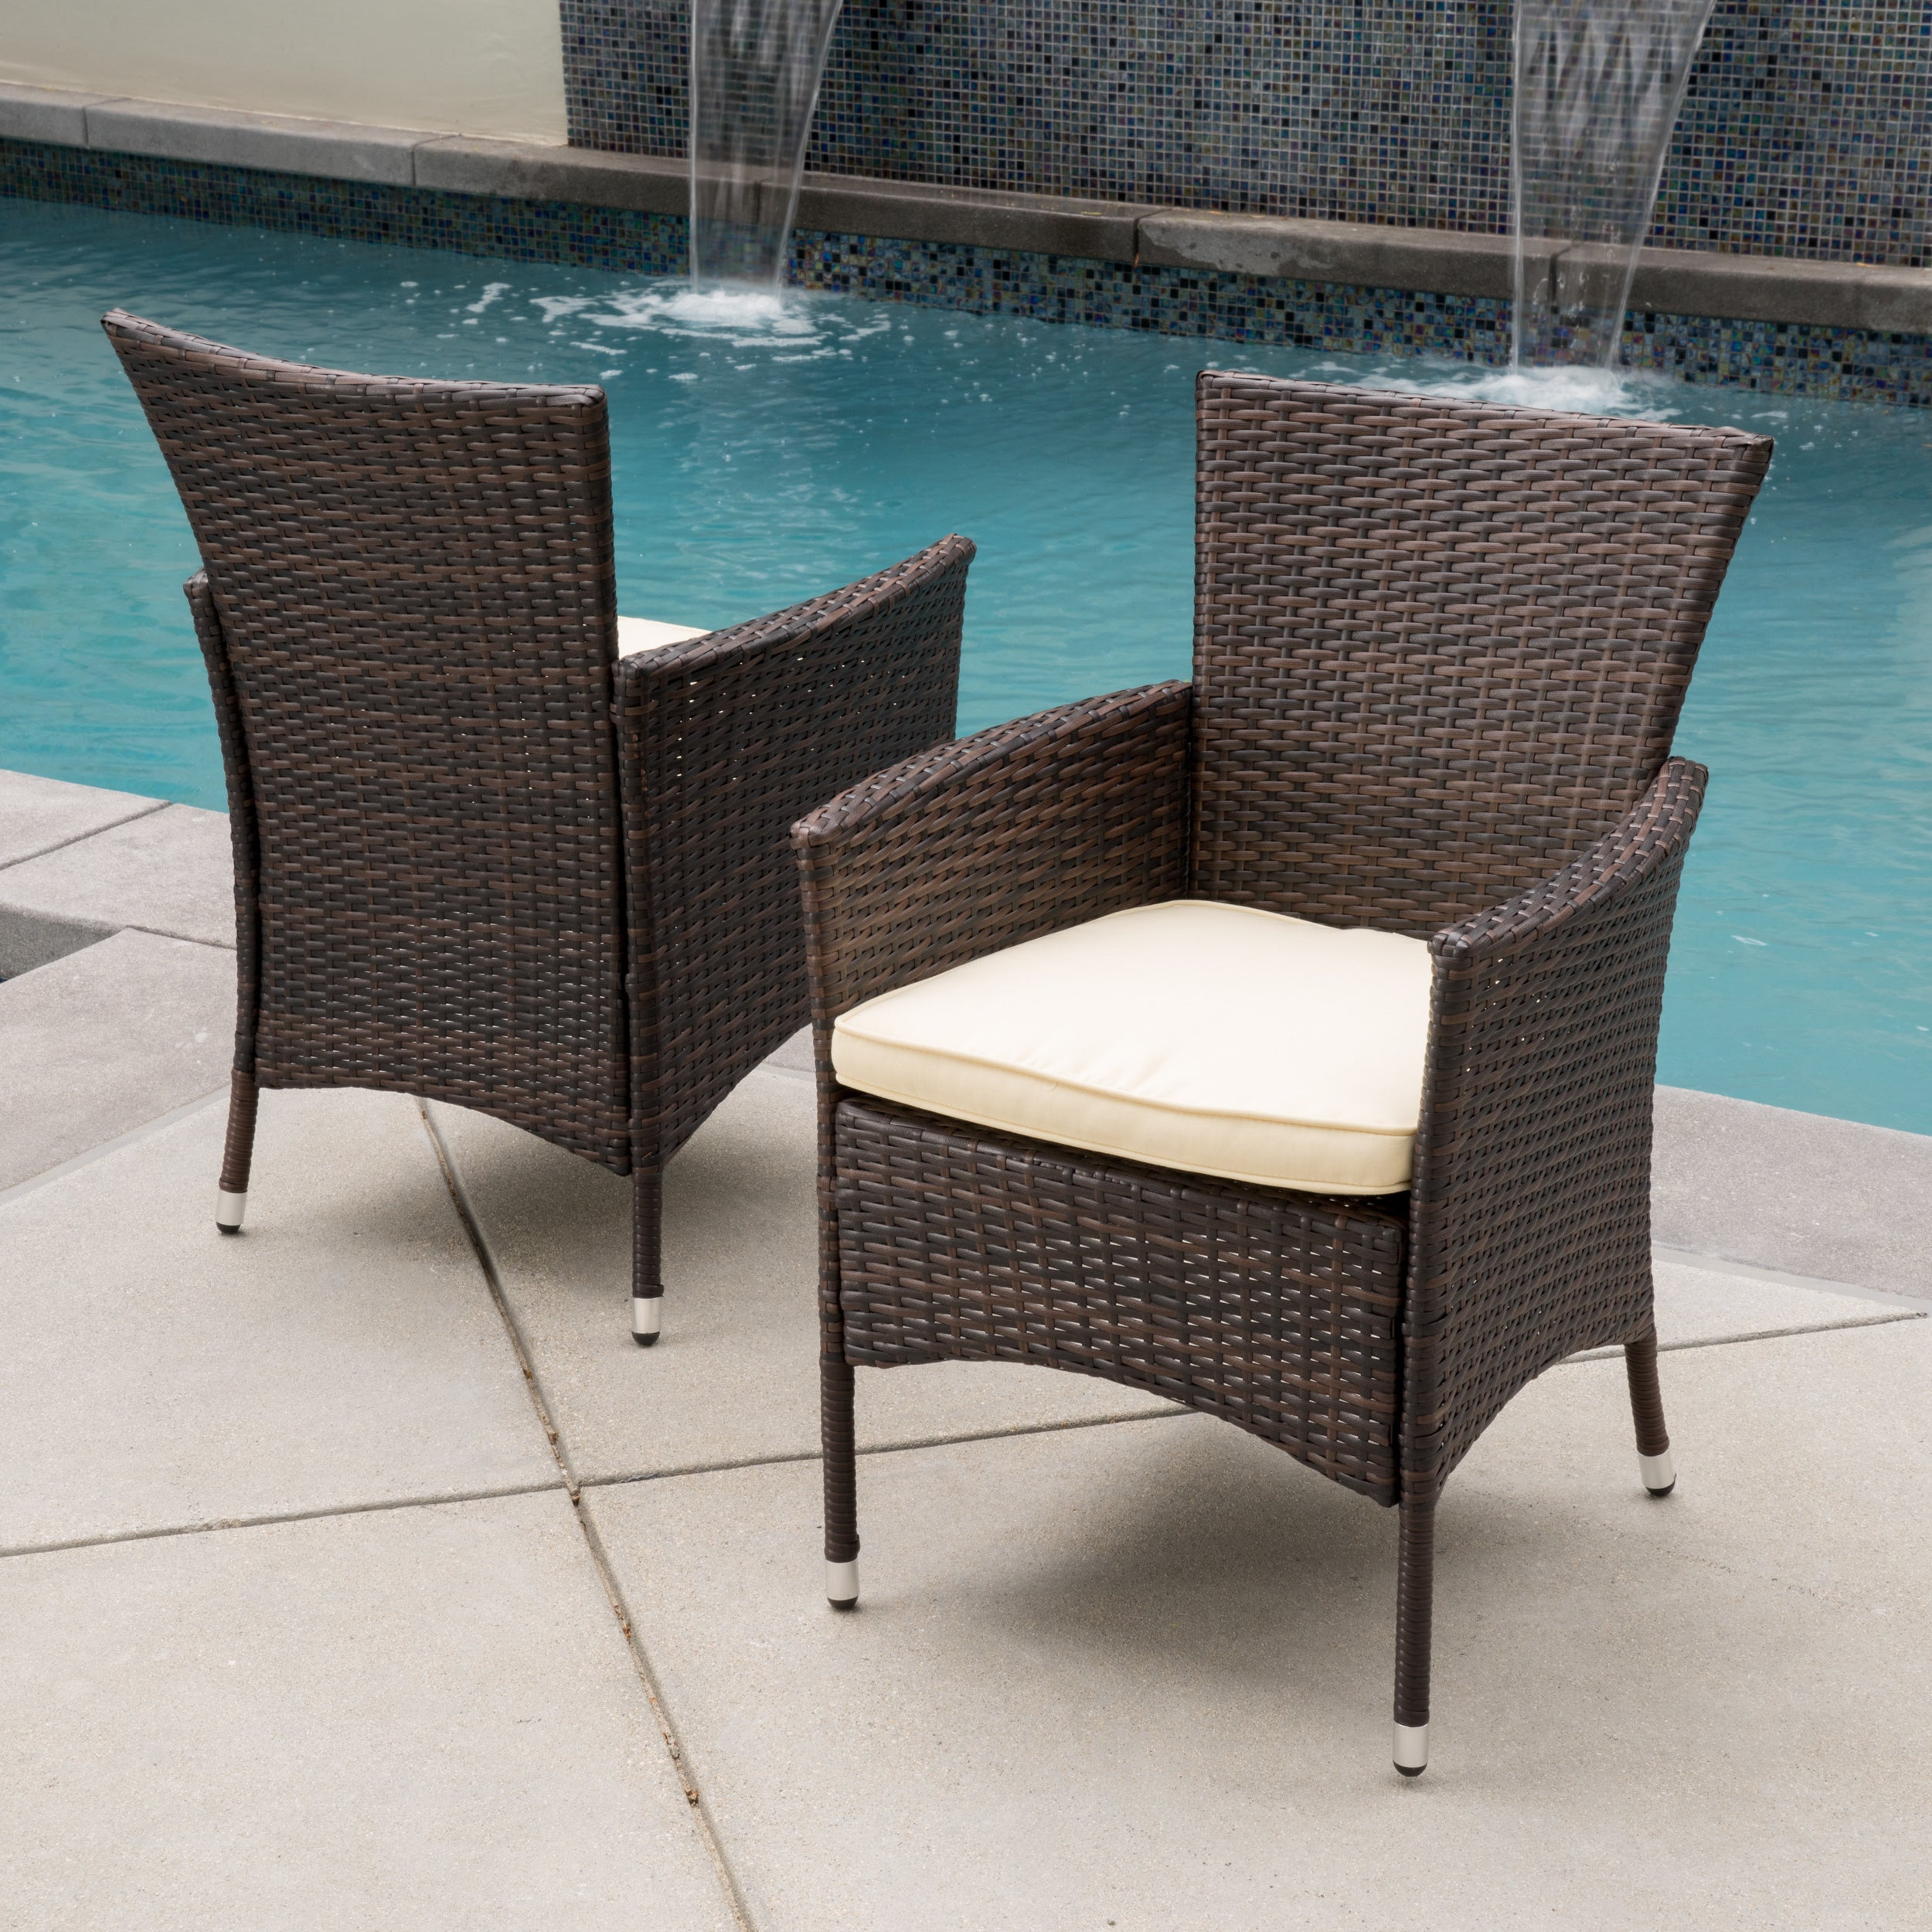 for sofas wicker choose arrange your patio garden fishpools and rattan how furniture to sofa sets tcg iyqejwq